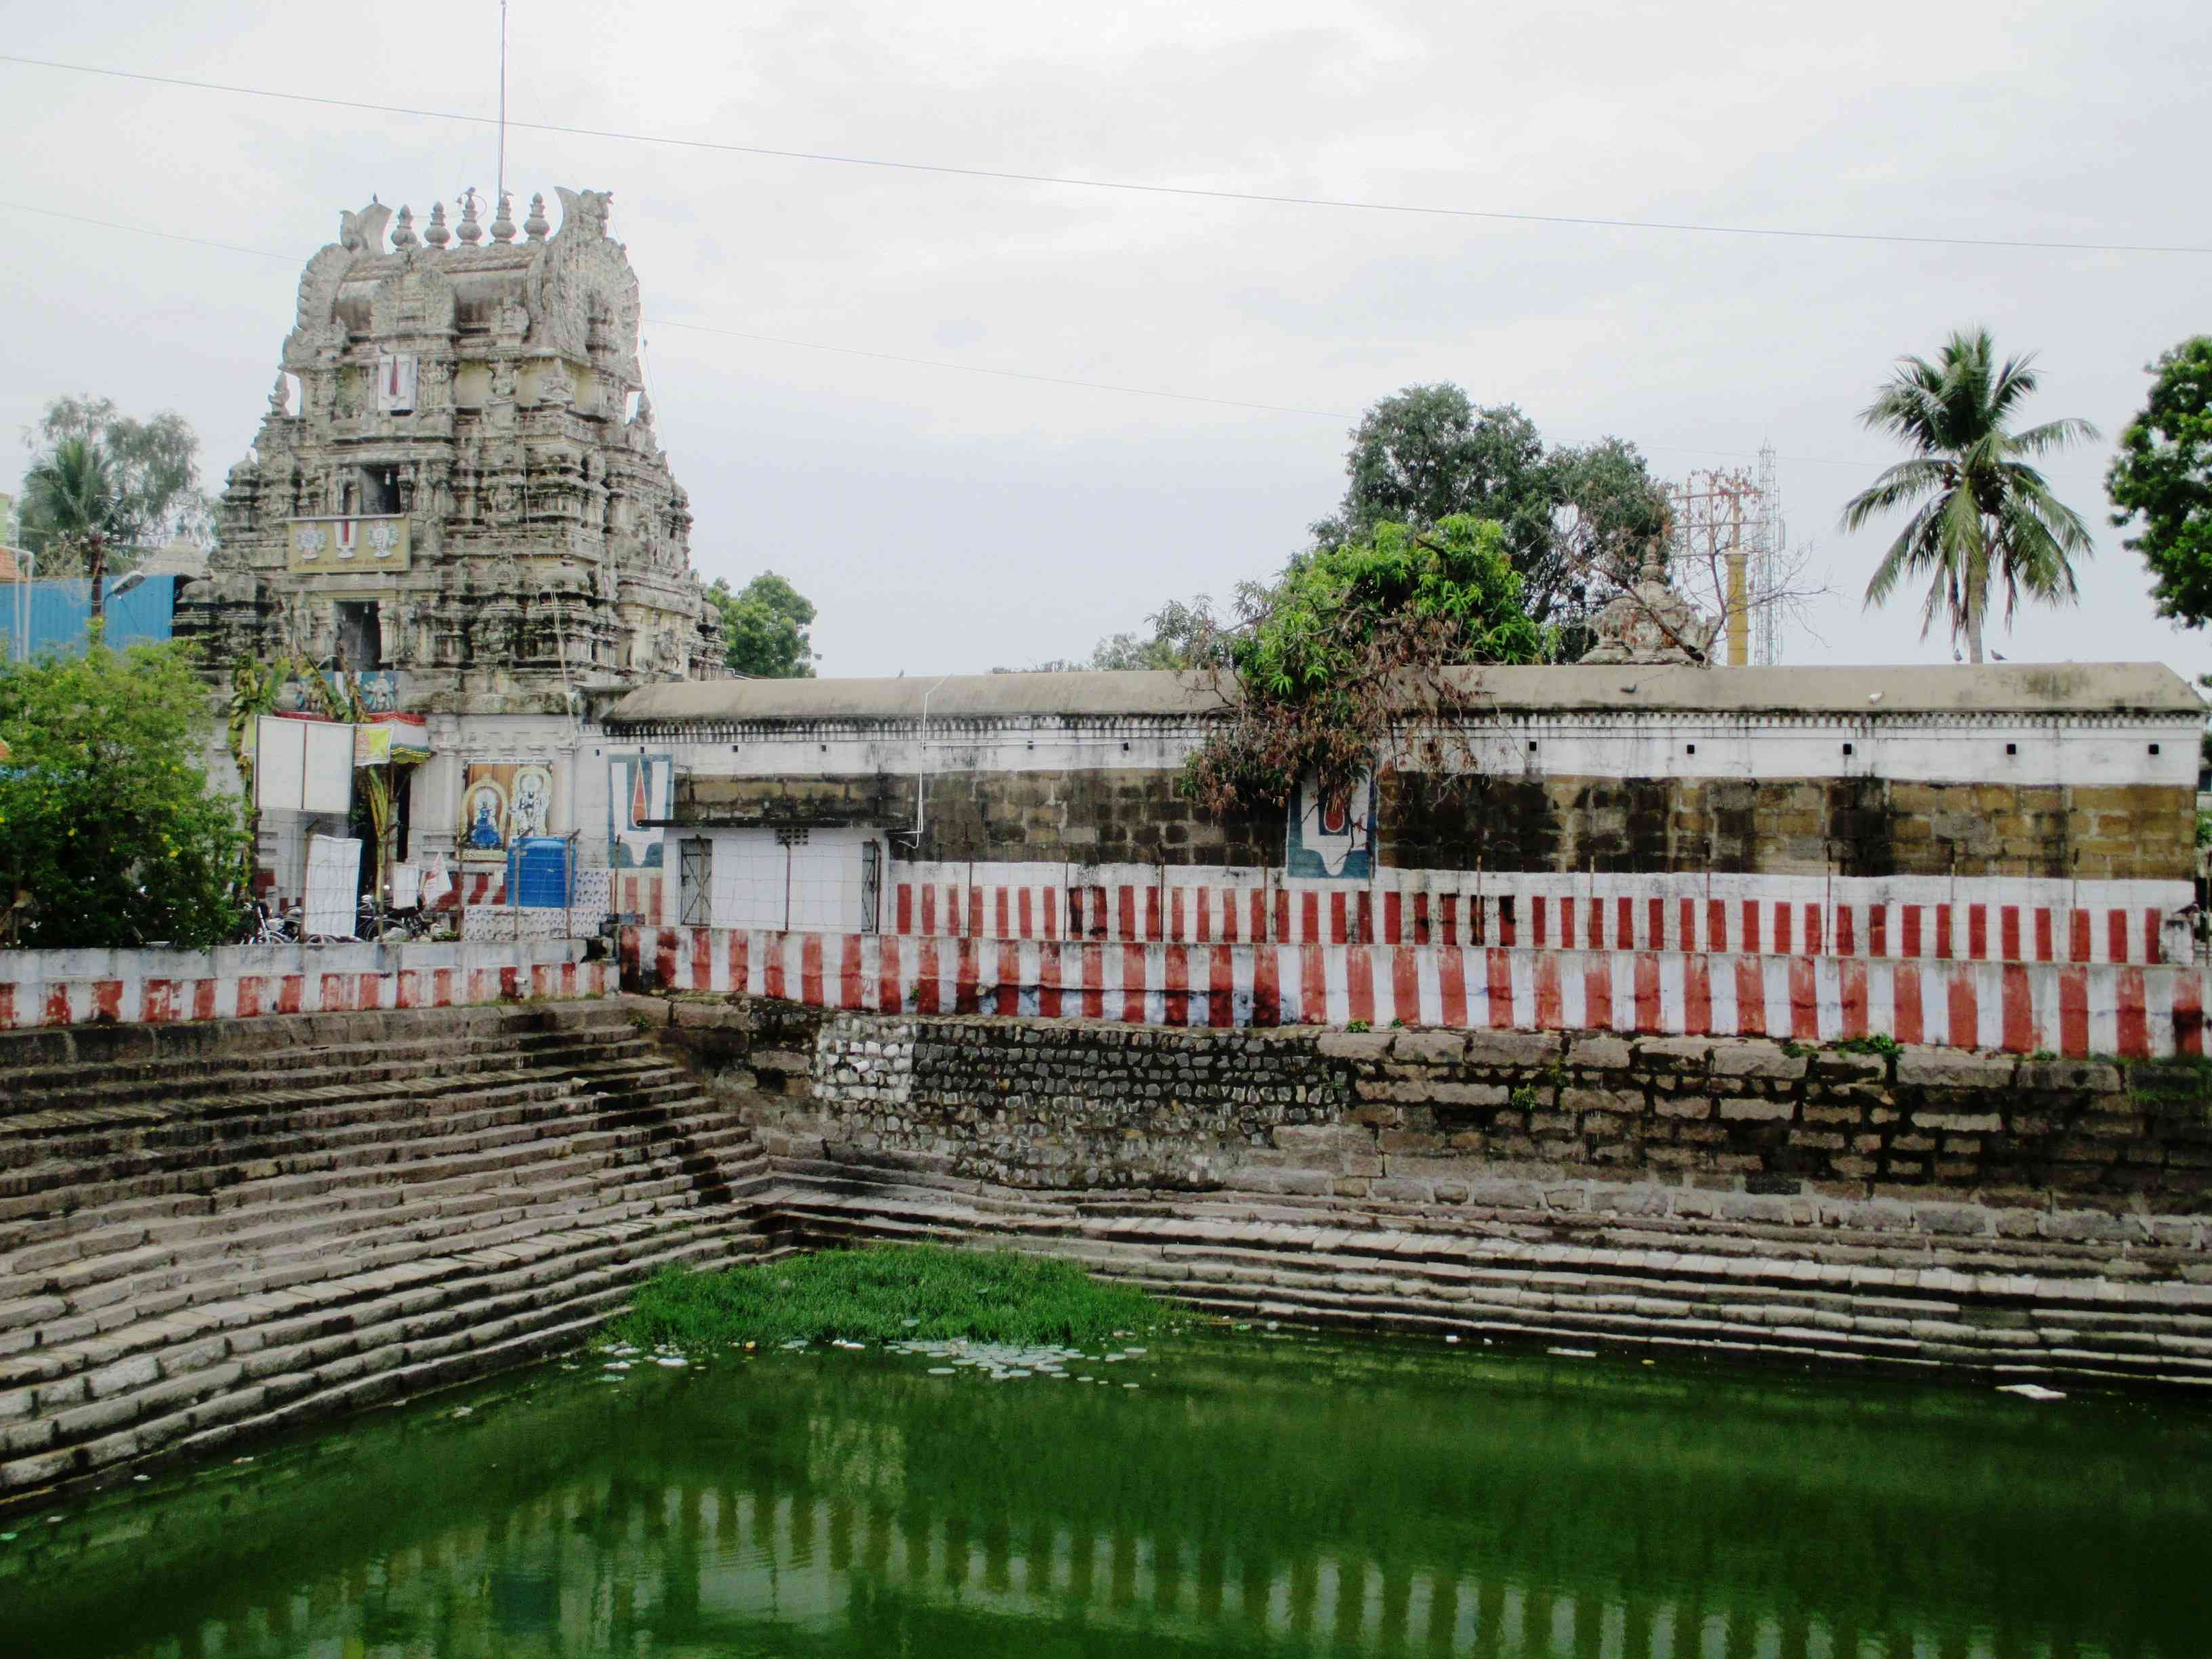 Green pool of water with stone steps and white temple in the background, Kanchipuram, Tamil Nadu, India